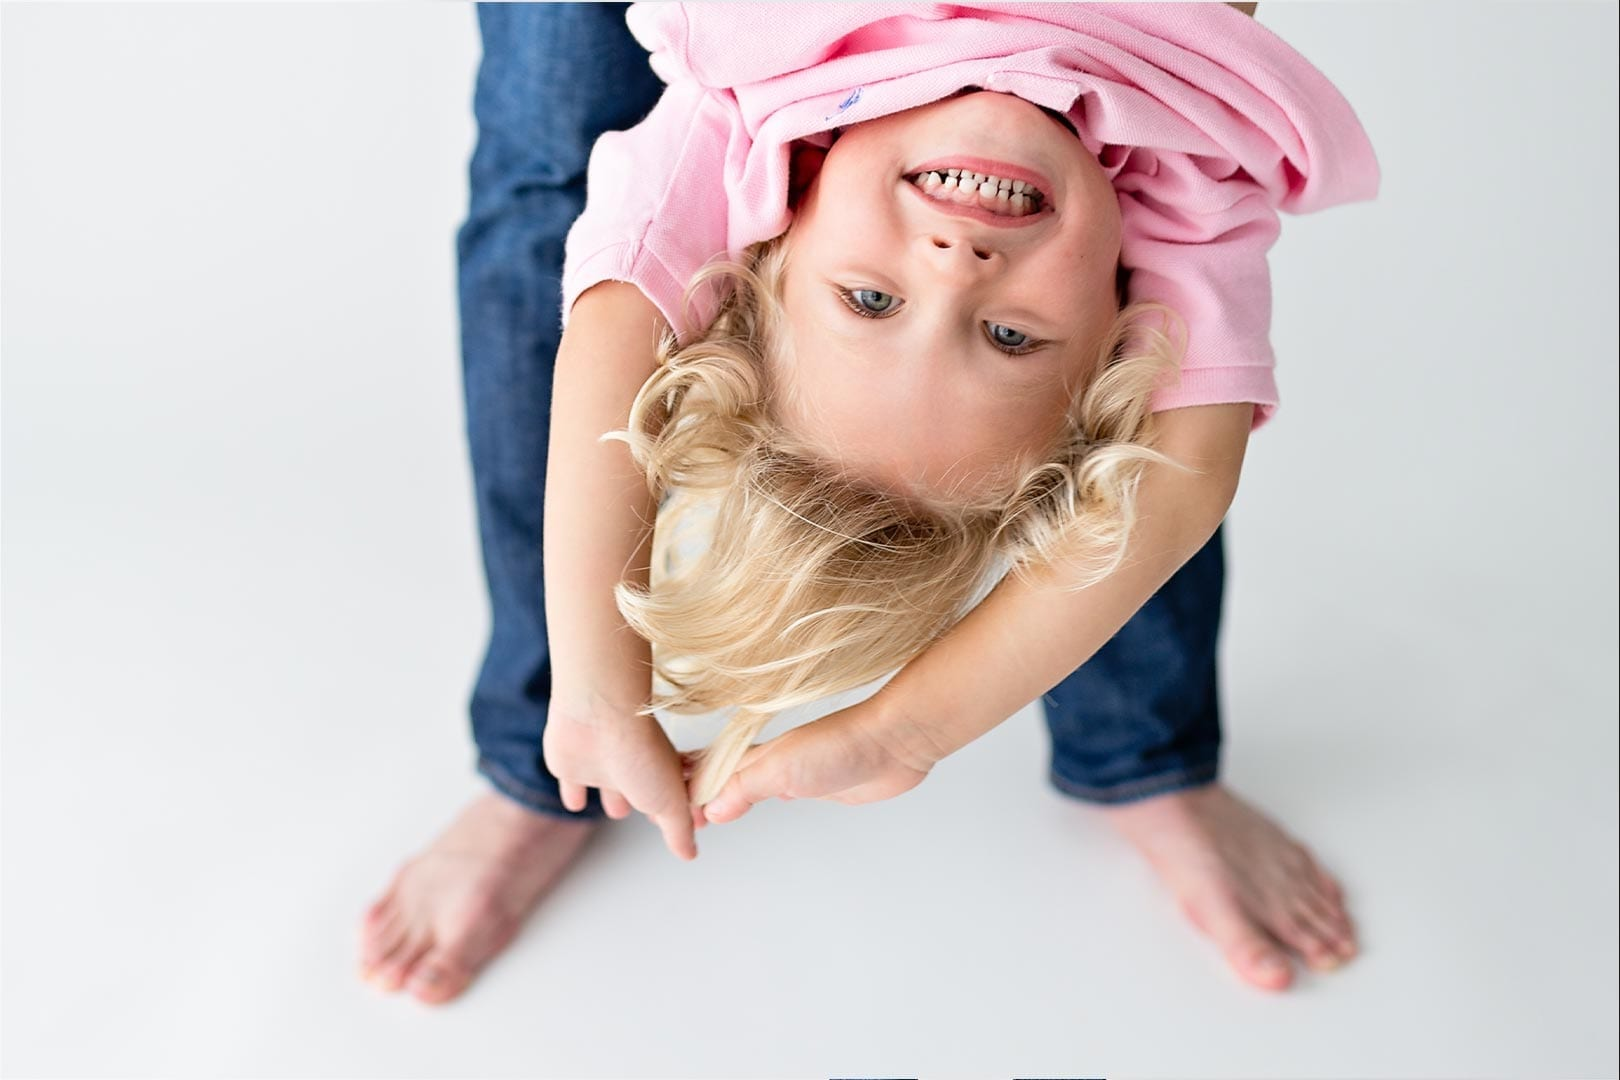 little girl smiling in upside down position